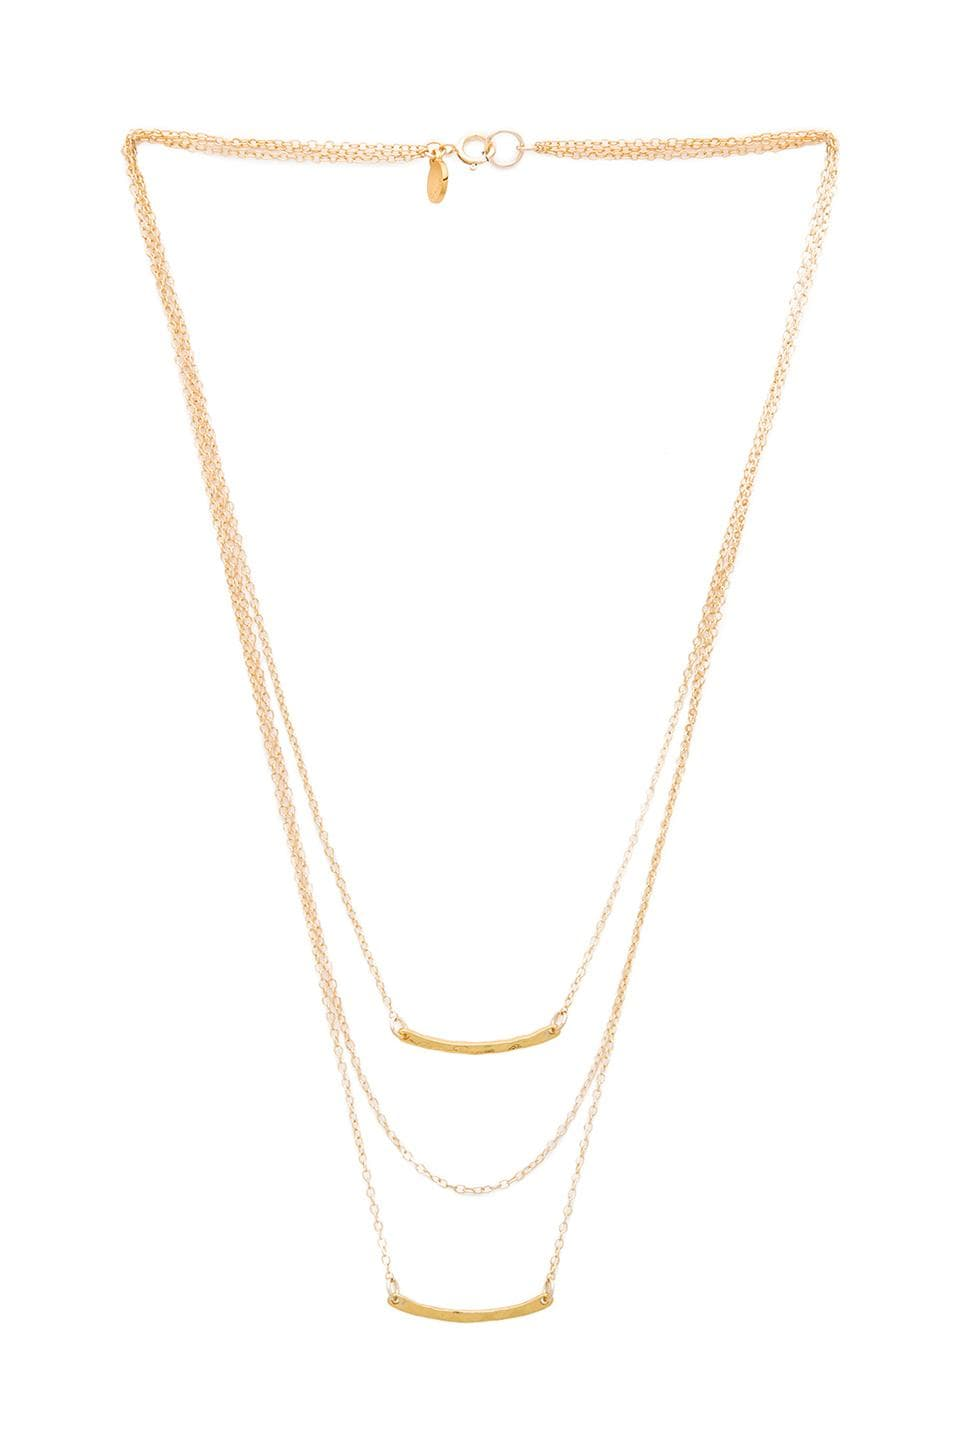 gorjana Taner Bar Mini Triple Layer Necklace in Gold